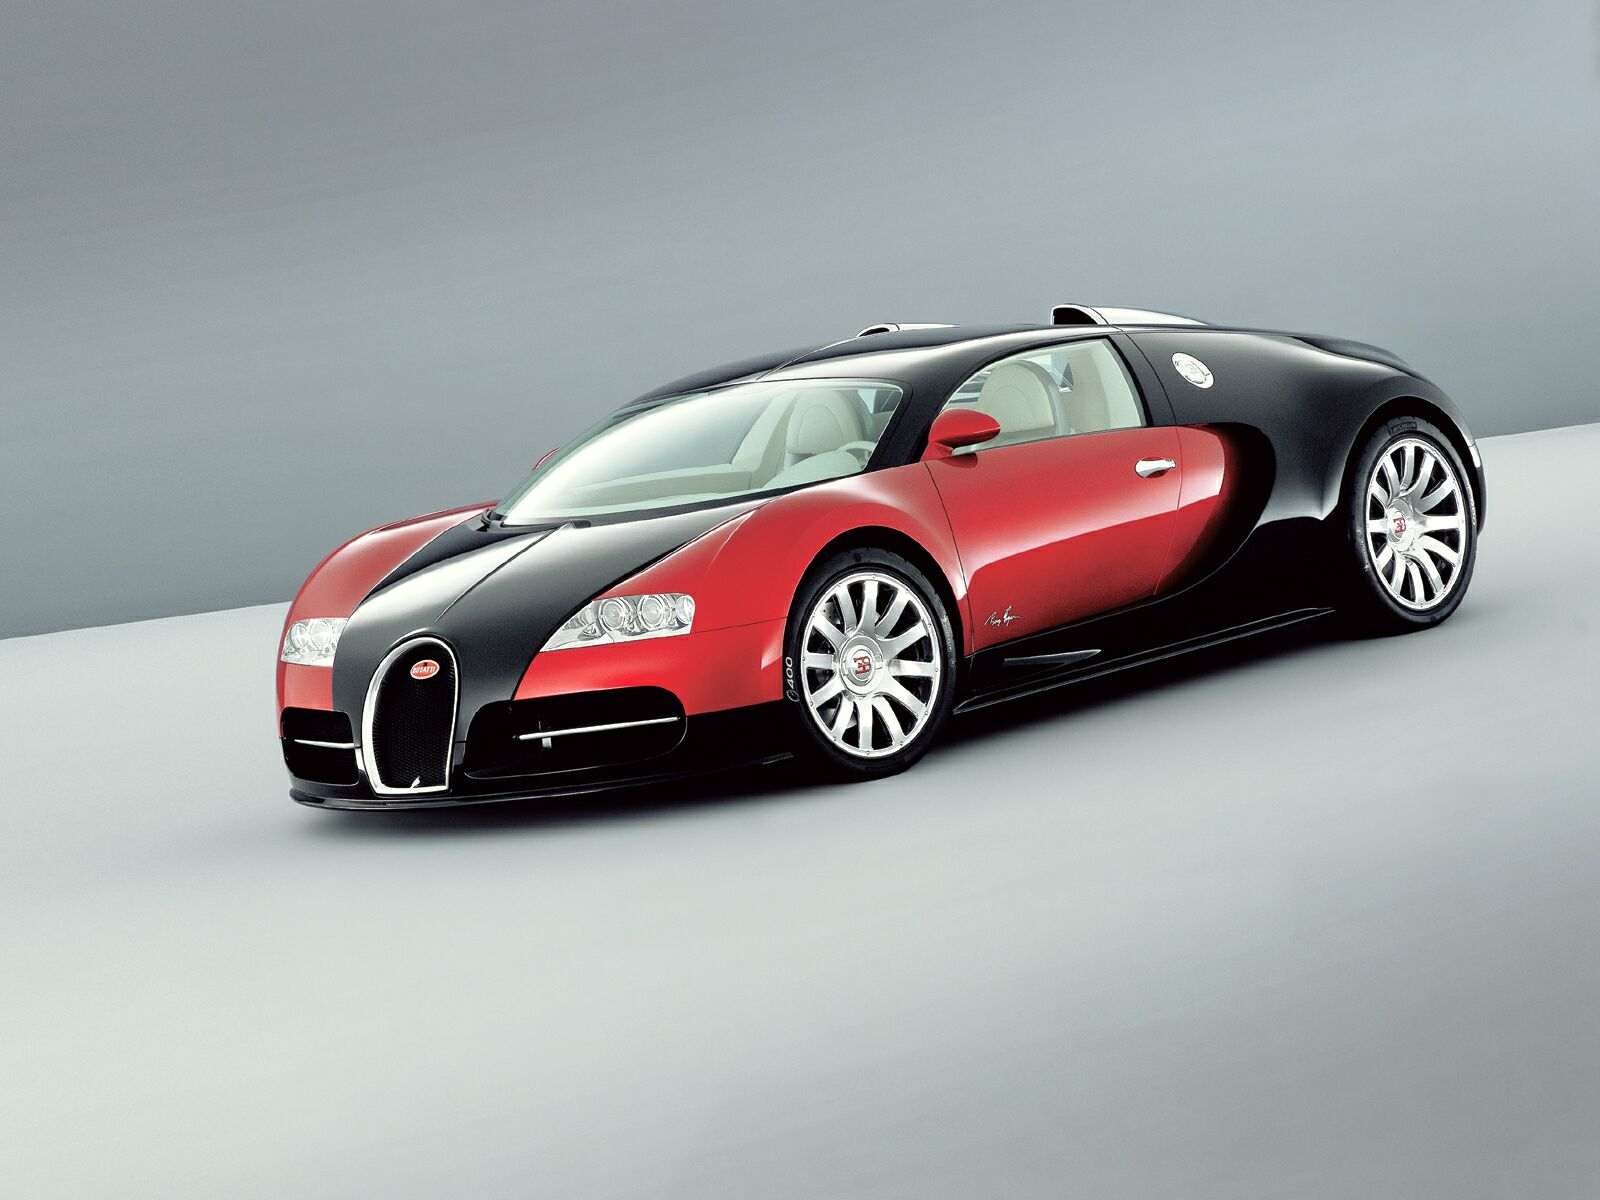 bugatti veyron pictures hd desktop wallpaper. Black Bedroom Furniture Sets. Home Design Ideas